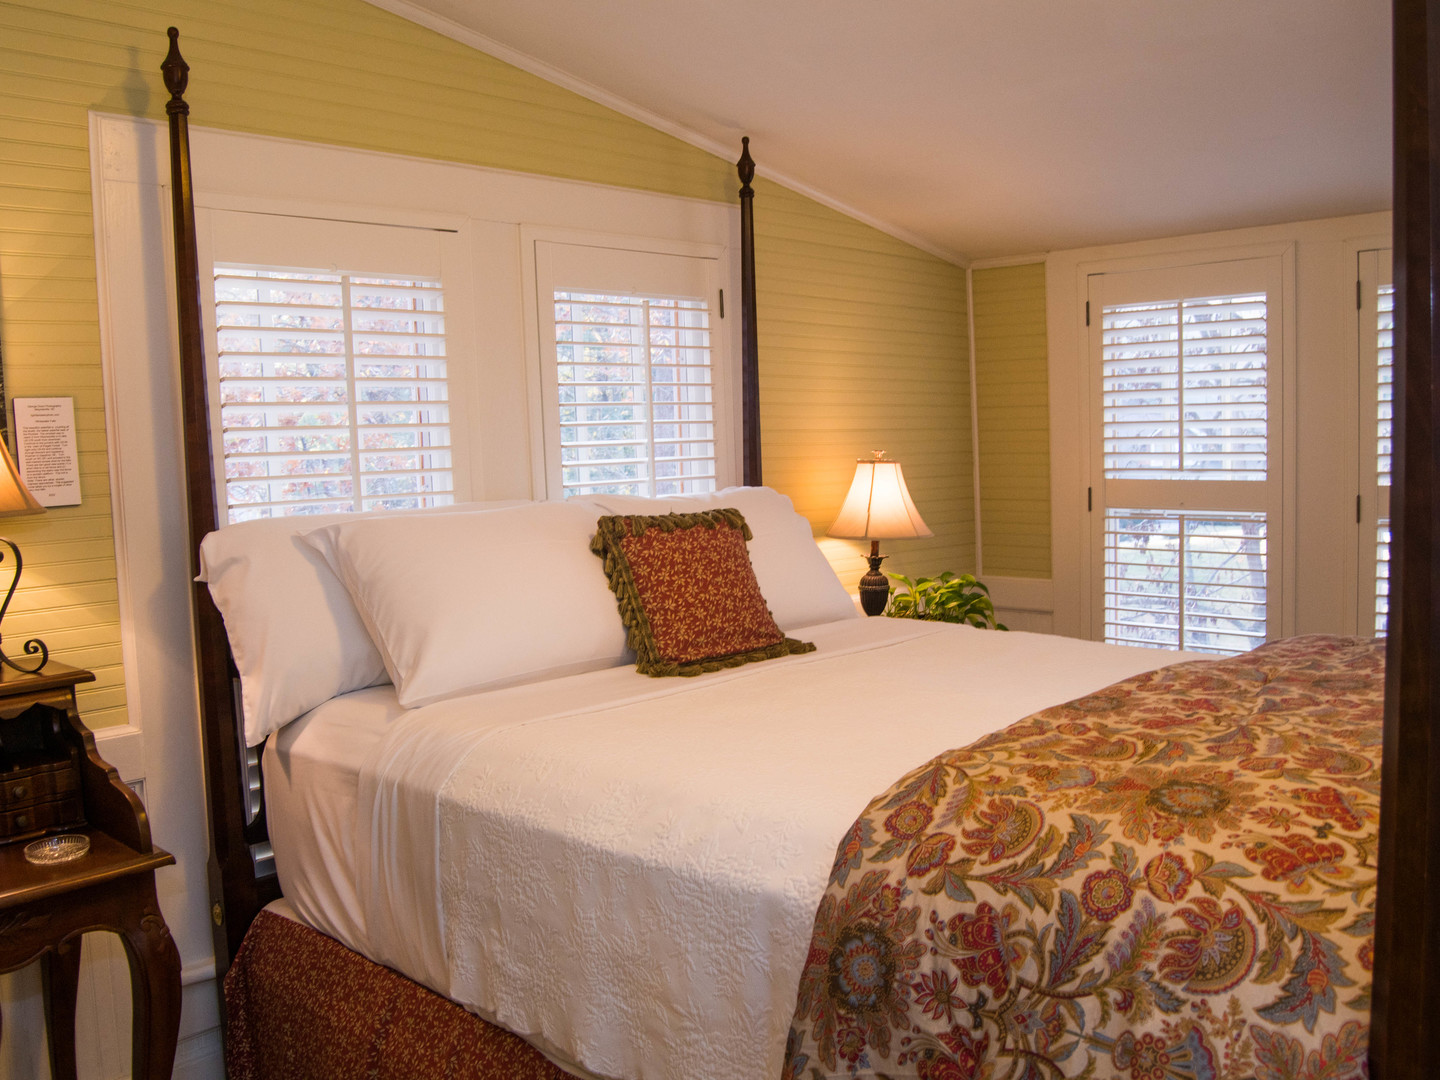 A bedroom with a large bed in a hotel room at Oak Hill on Love Lane Bed & Breakfast.